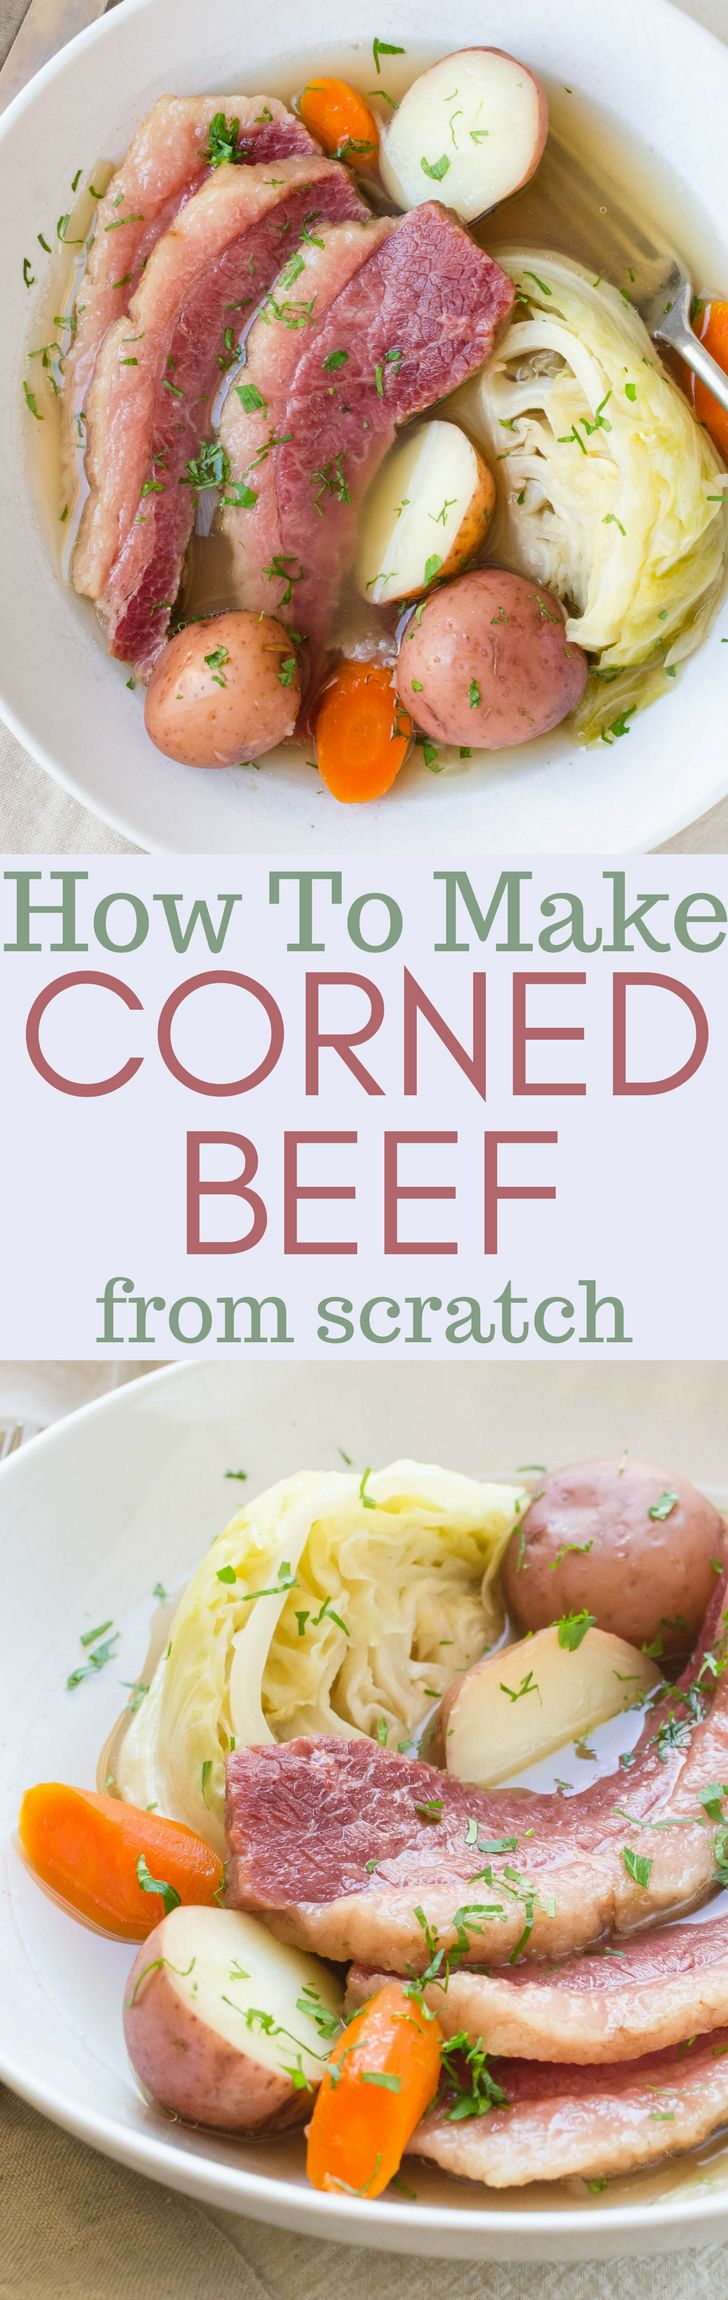 The best corned beef and cabbage recipe starts with making corned beef from scratch. Learn how to corn beef with a good brine and a little time for this easy St. Patrick's Day favorite. #corned beef #howtocornbeef #cornedbeeffromscratch #homemadecornedbeef #easycornedbeefandcabbage #cornedbeefandcabbage #cornedbeefandcabbagerecipe #brineforcornedbeef #howtomakecornedbeef #beefbrisket #brisket #briningbrisket #stpatricksday #stpatricksdaycornedbeef #stpatricksdaydinner #onepotmeals...